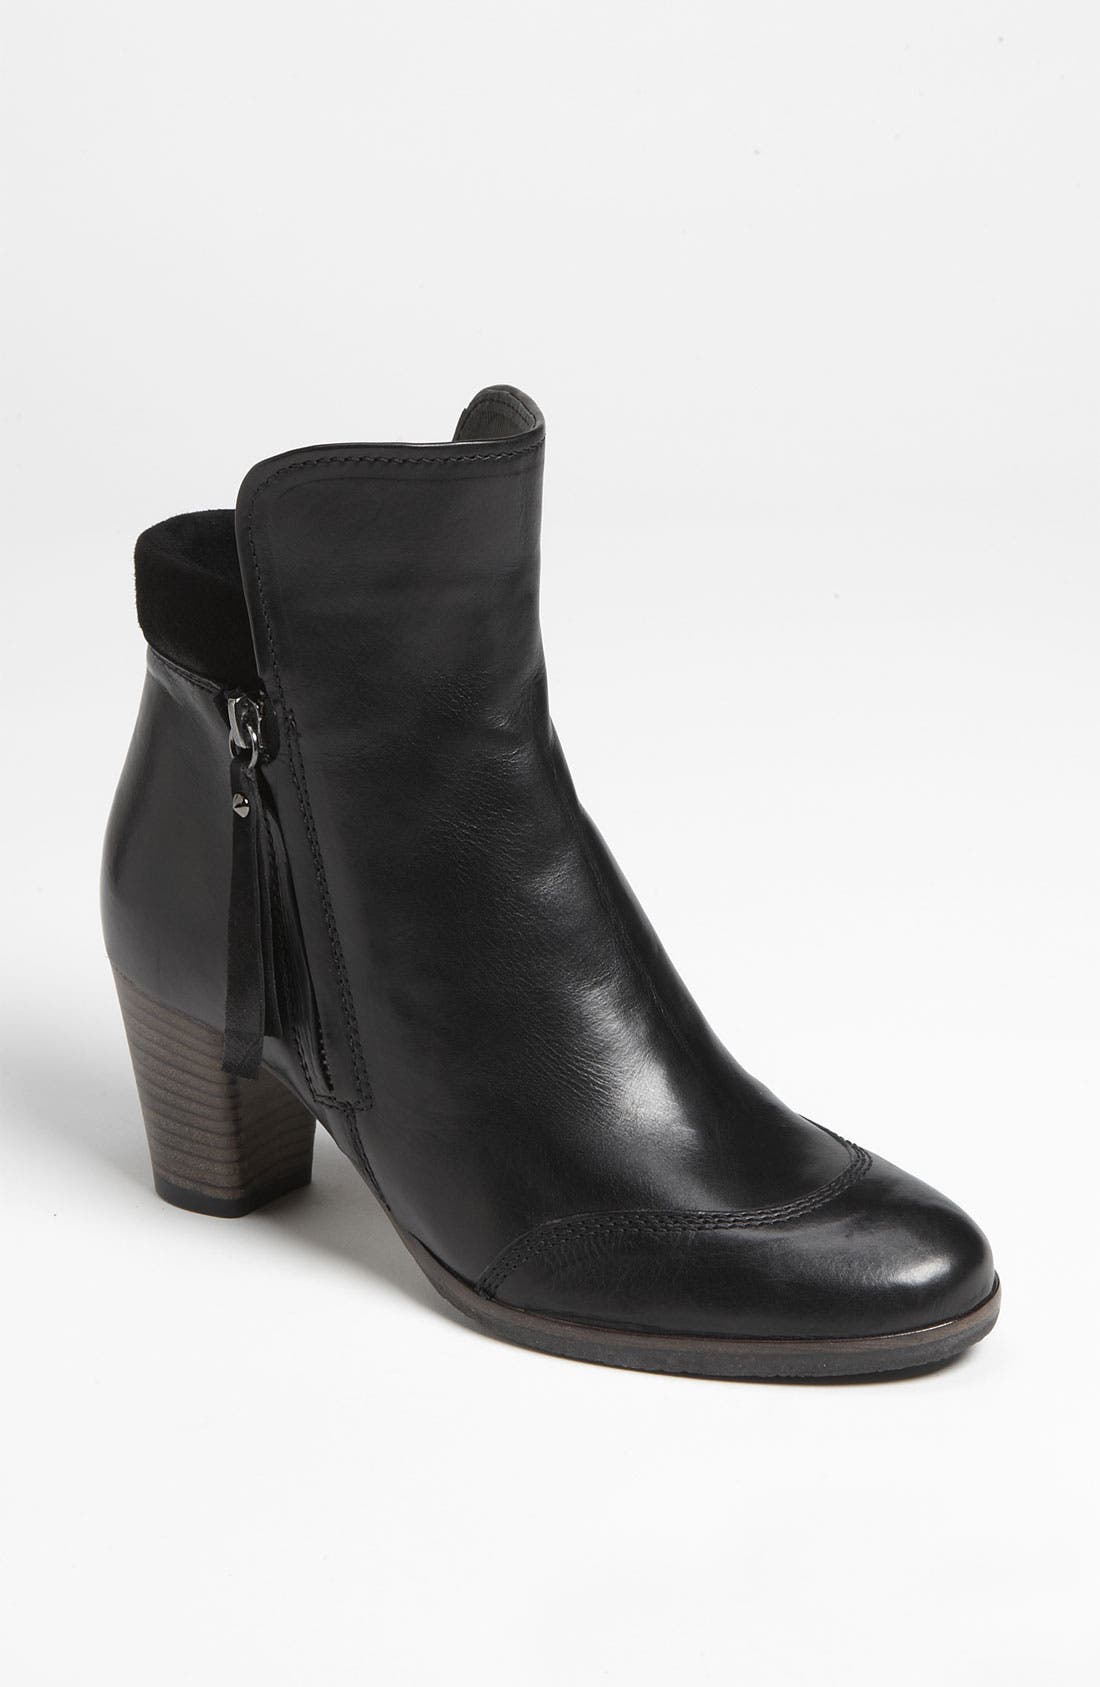 Alternate Image 1 Selected - ECCO 'Norfolk' Boot